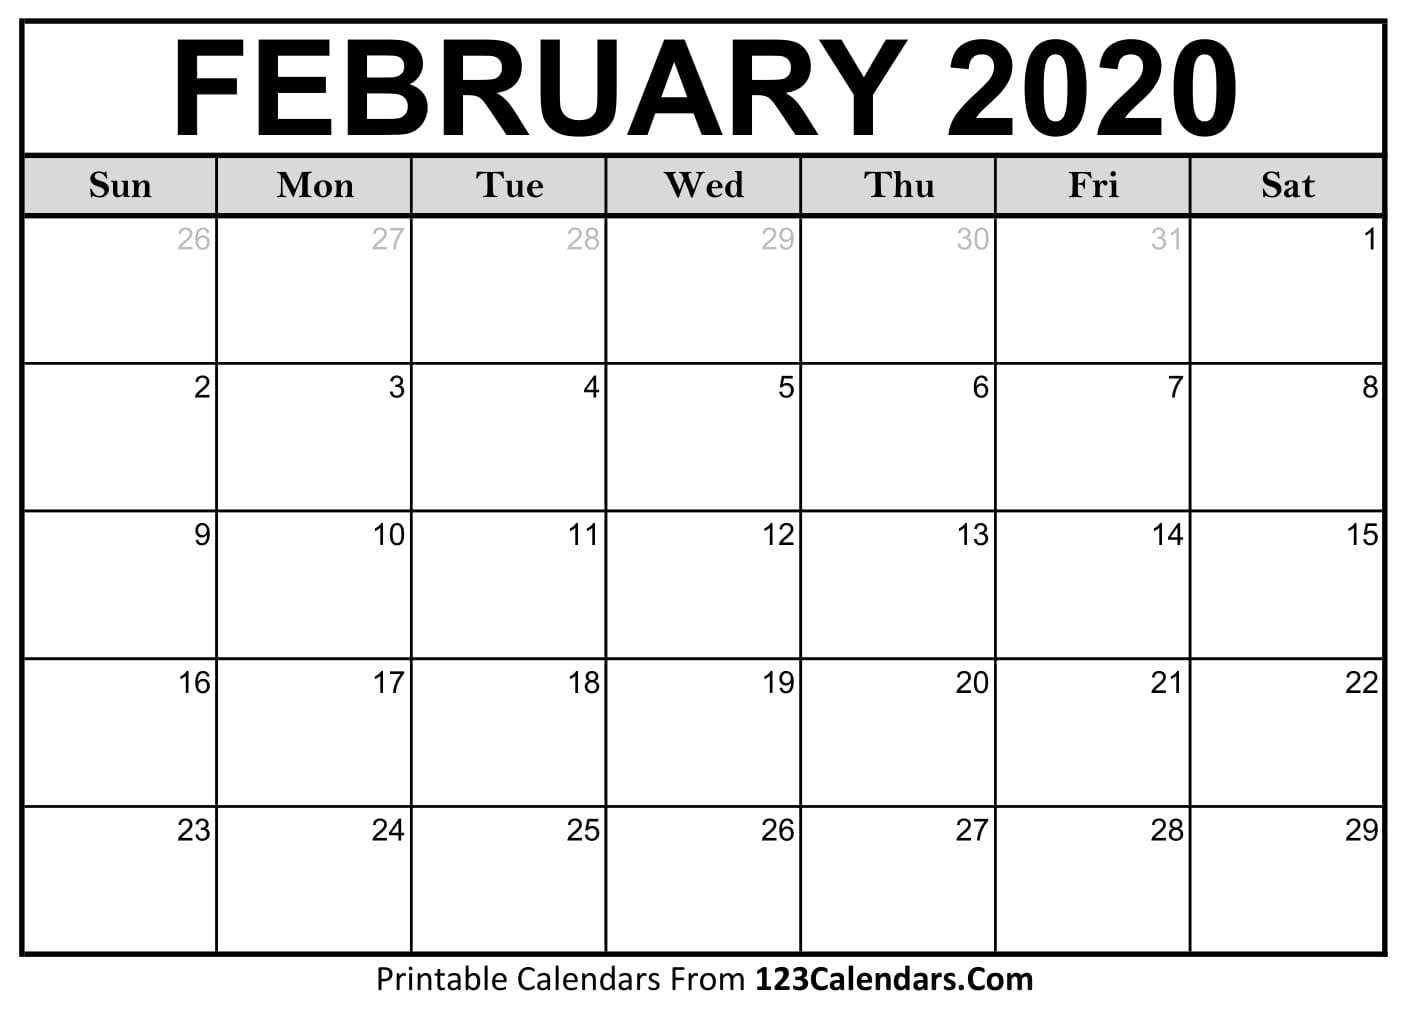 Feb 2020 Calendar Template - Togo.wpart.co